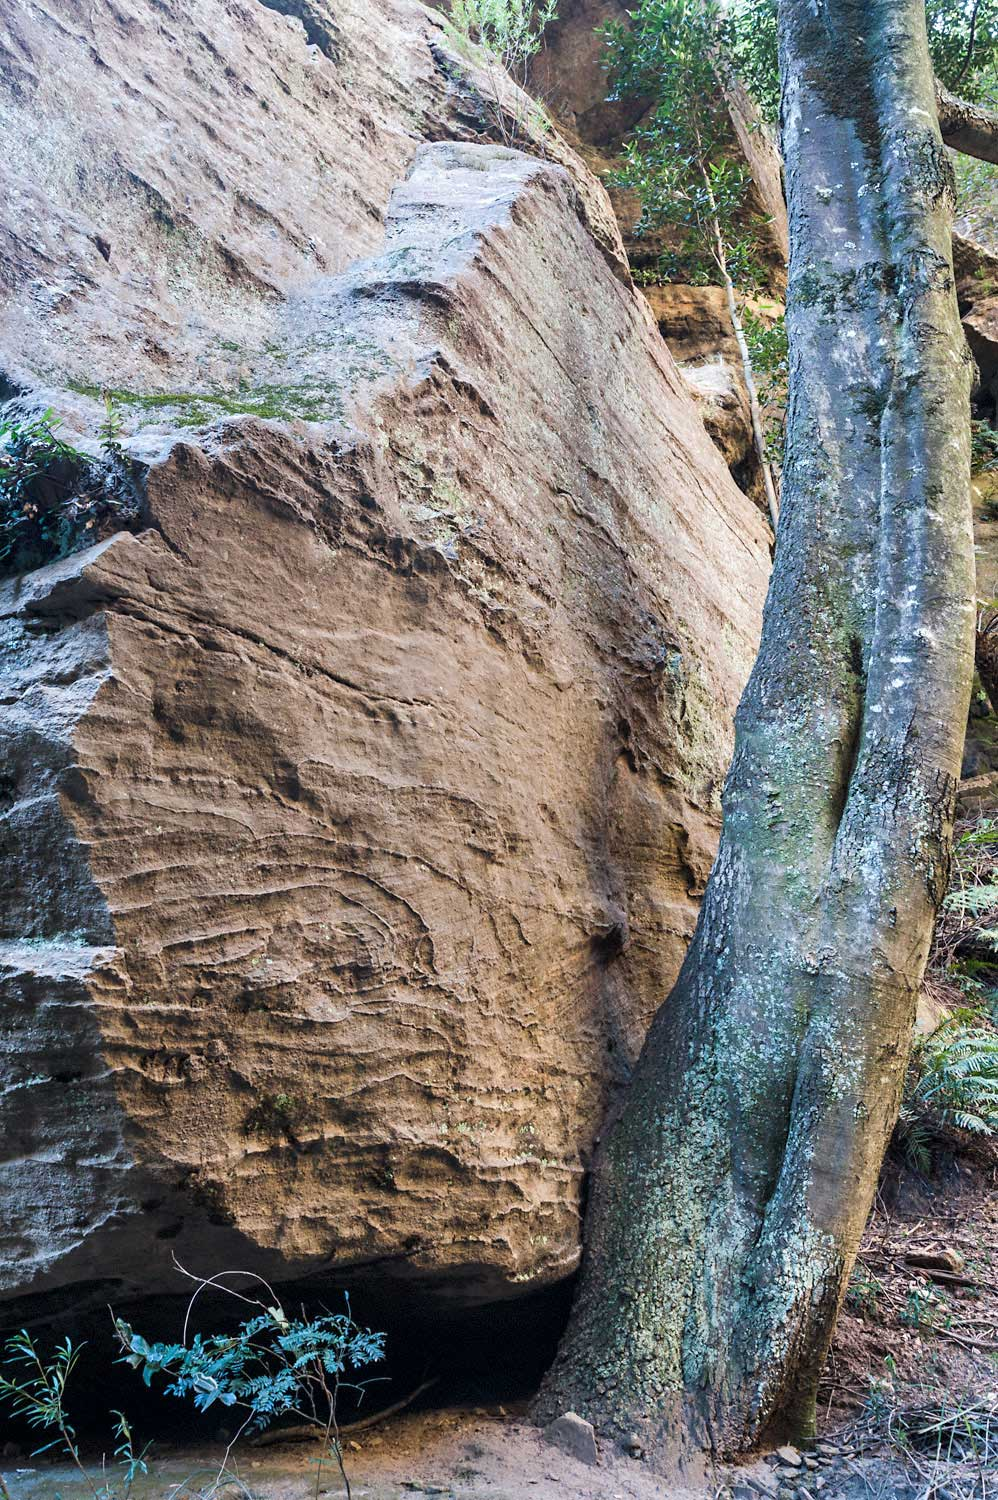 Warren-Hinder-LR-Tree-under-rock.jpg